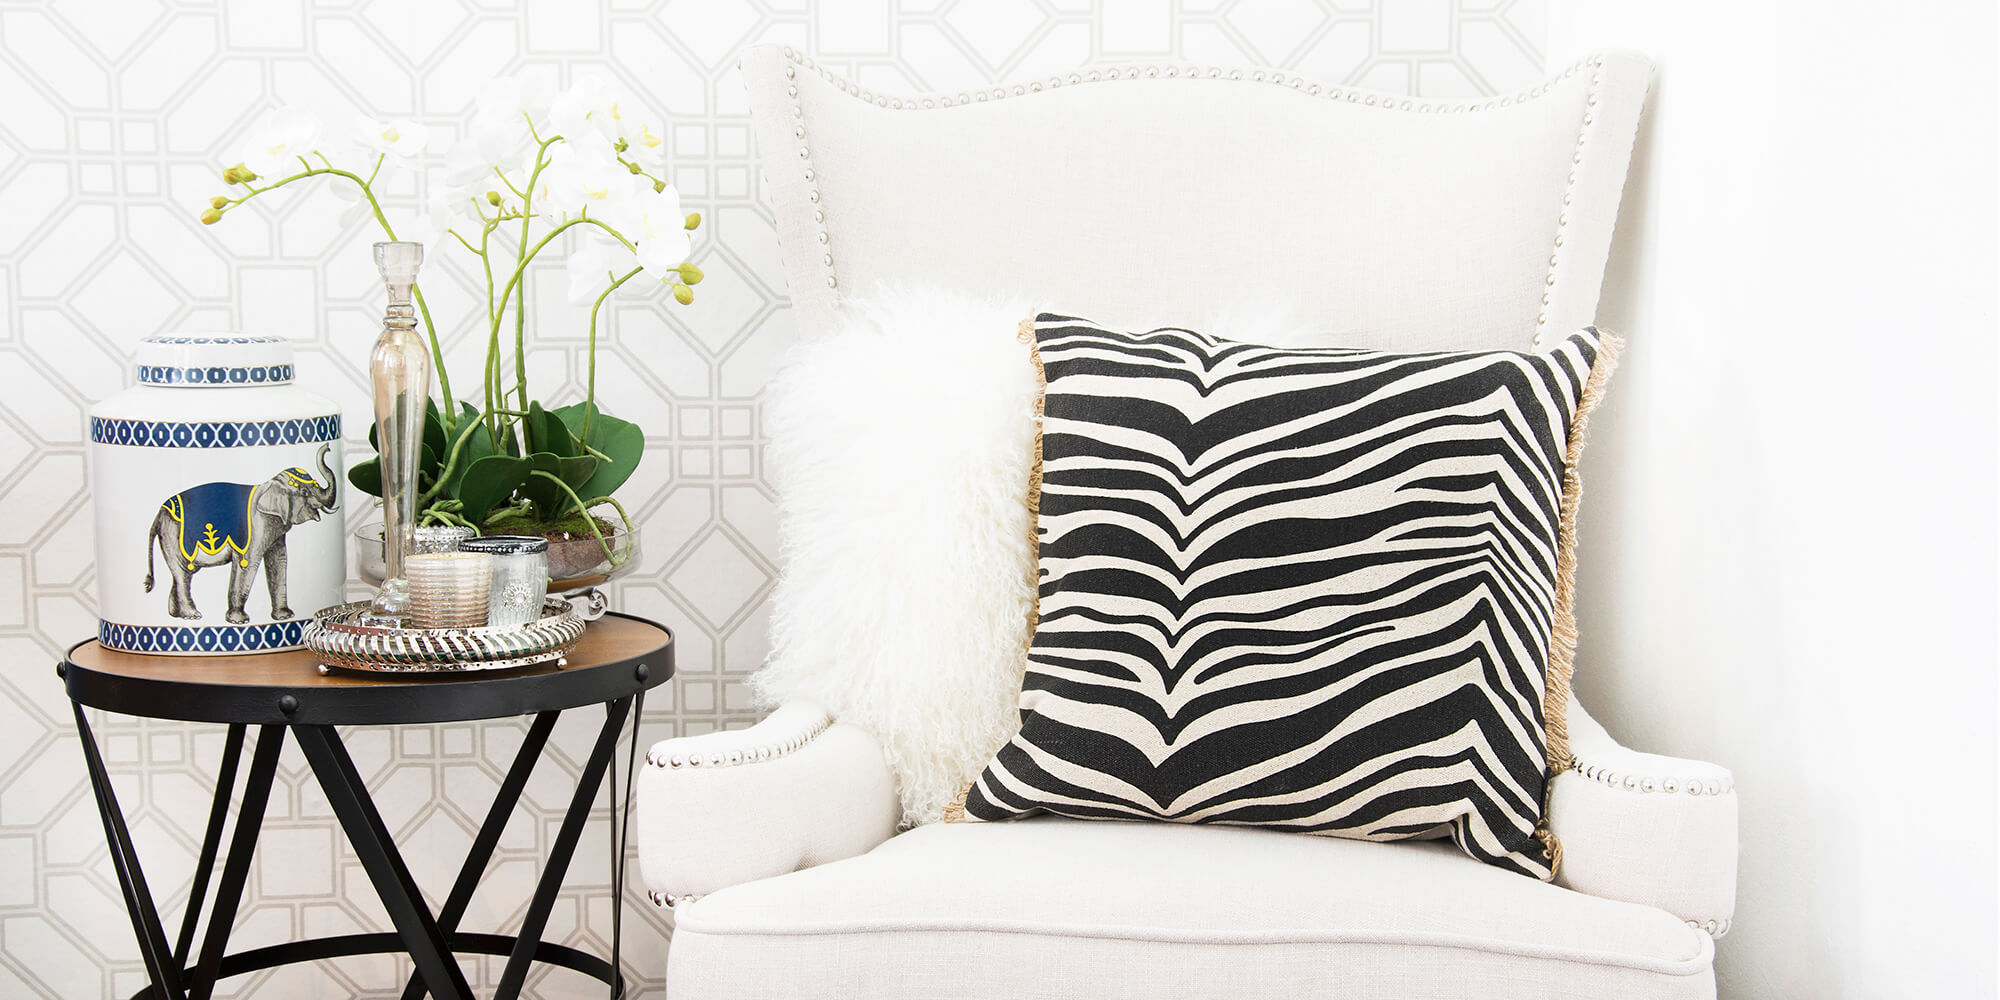 Wild life for home: Zebra-Print